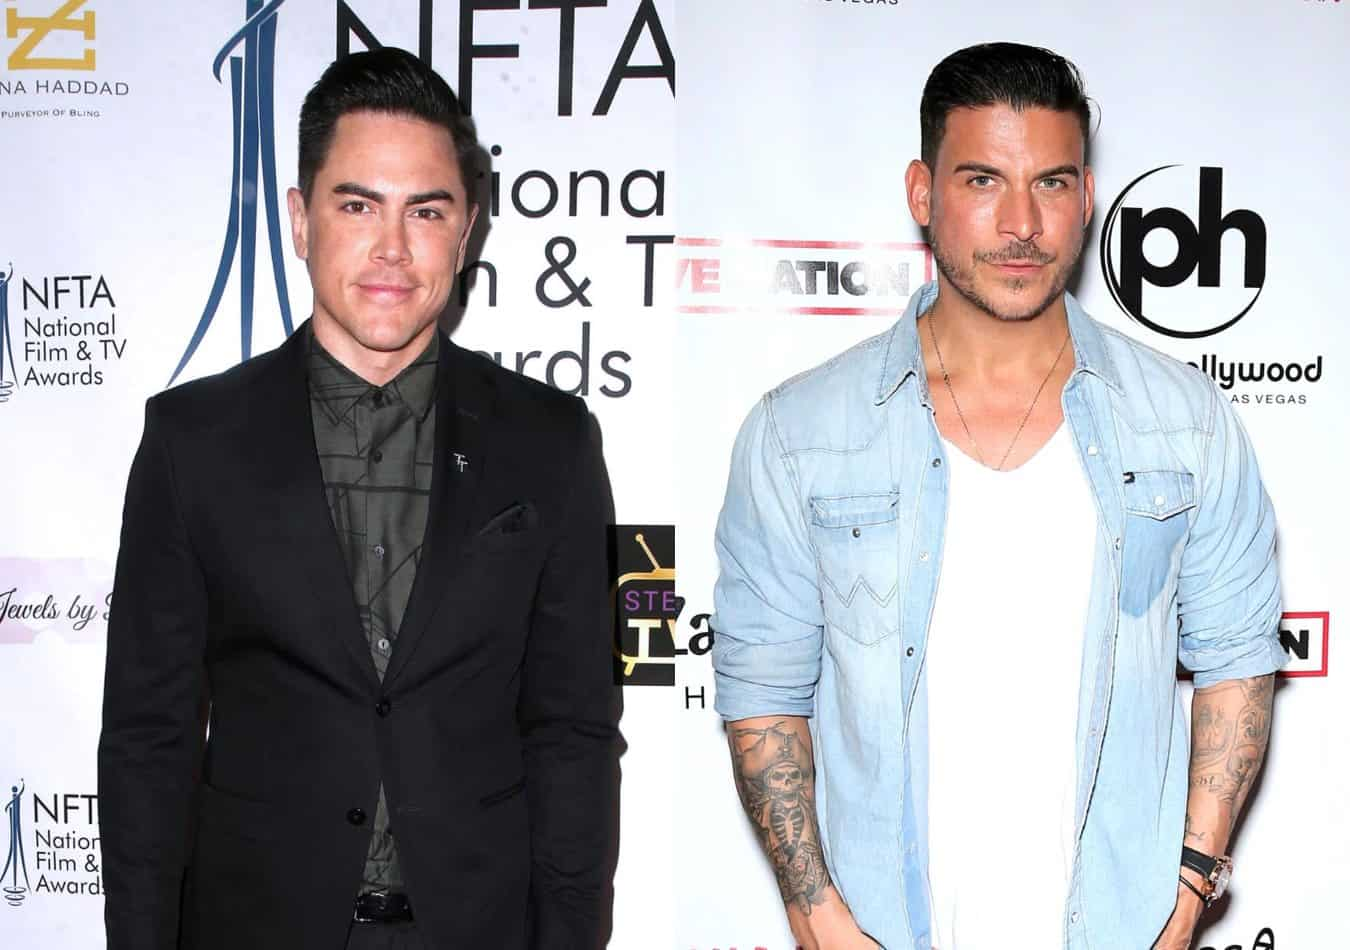 Vanderpump Rules' Tom Sandoval Opens Up About Fight With Jax Taylor Over His Pastor, Admits This Season's Edit Has Been 'a Little Rough' and Slams 'Vindictive' Co-Stars